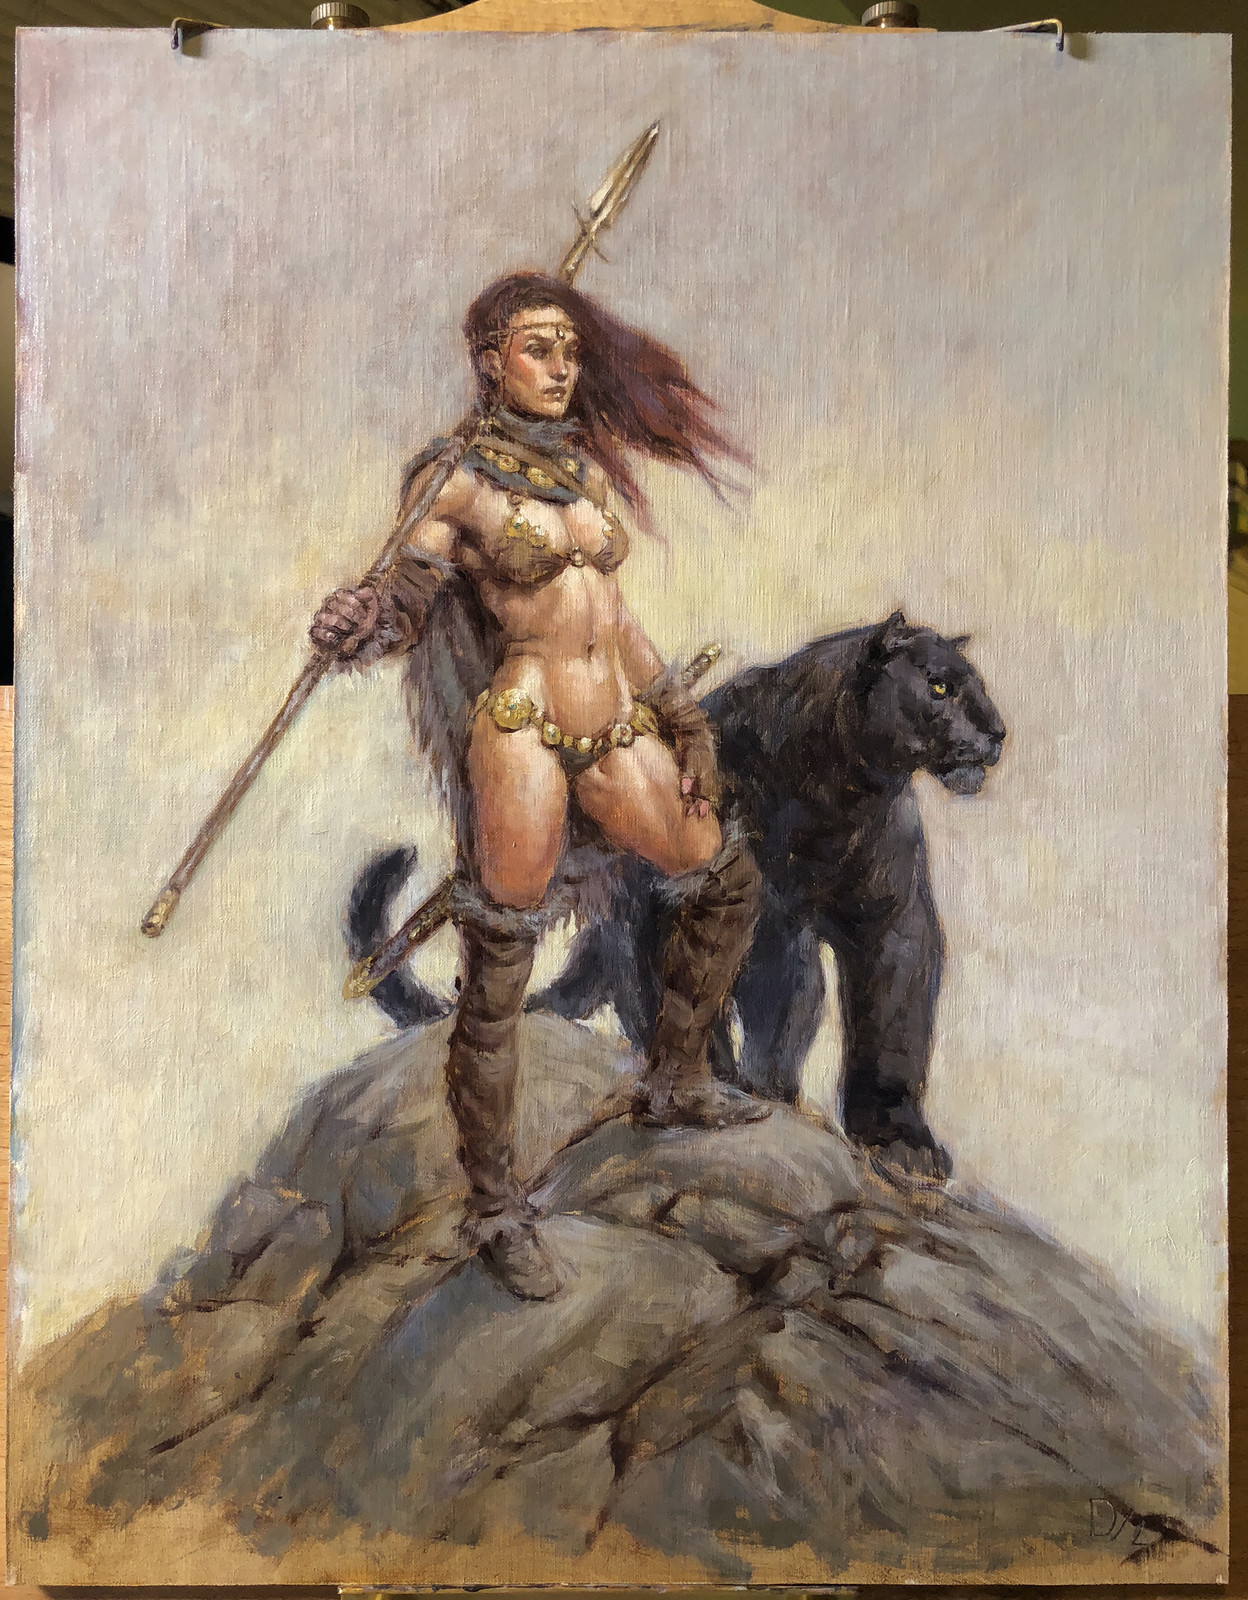 Frazetta-esque Adventures! (w/Process)